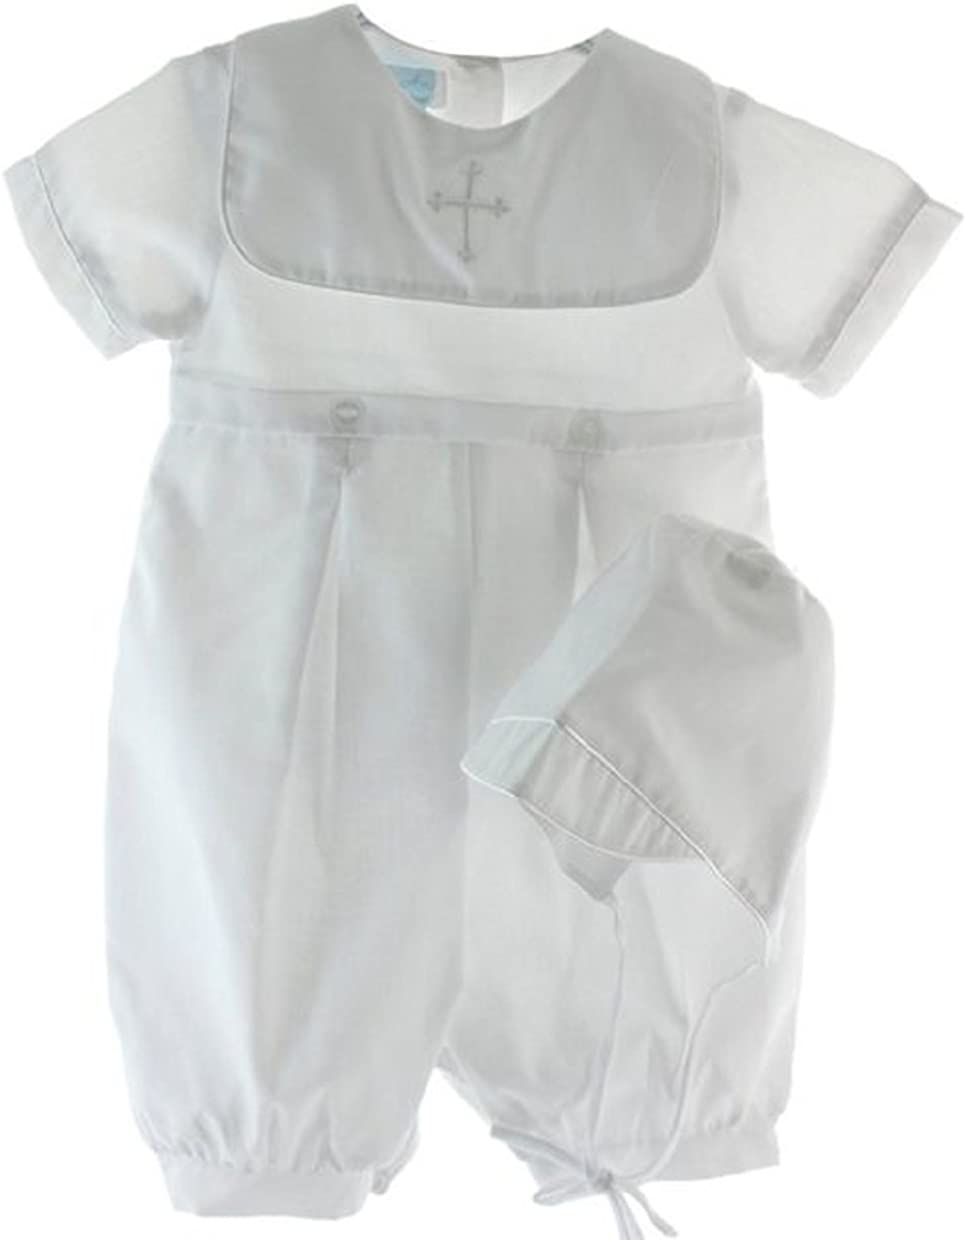 Baby Boys Many popular brands Baptism Romper and Hat Embroidered with Cross Las Vegas Mall